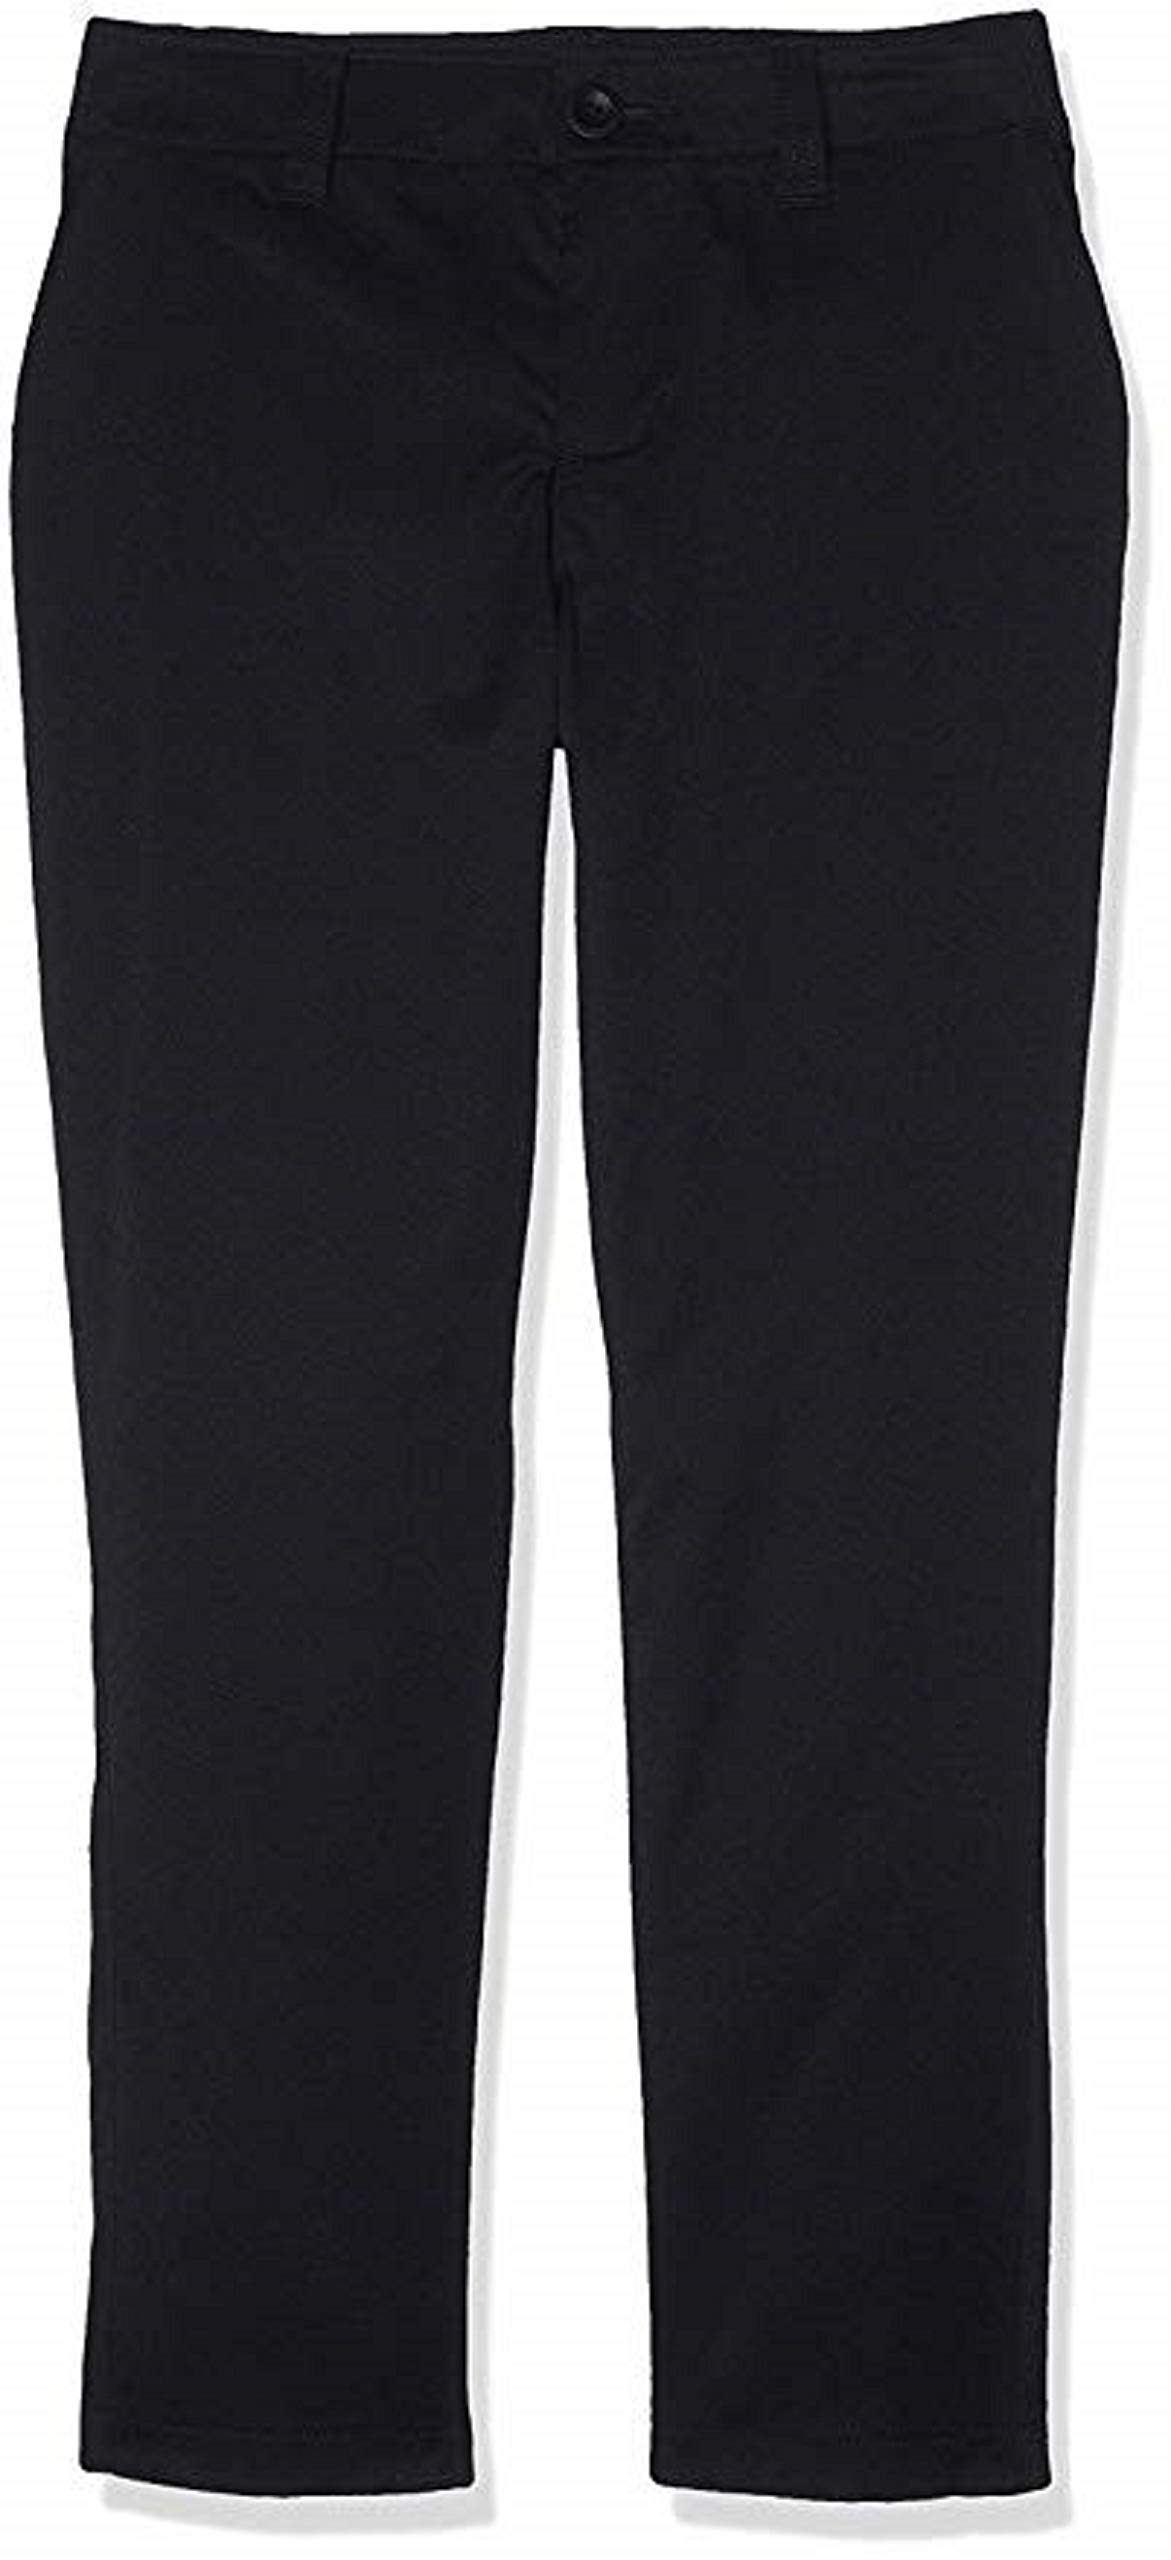 Under Armour Boys Youth Match Play Golf Pants Trousers Style 1290353 Black Grey Size 8 by Under Armour